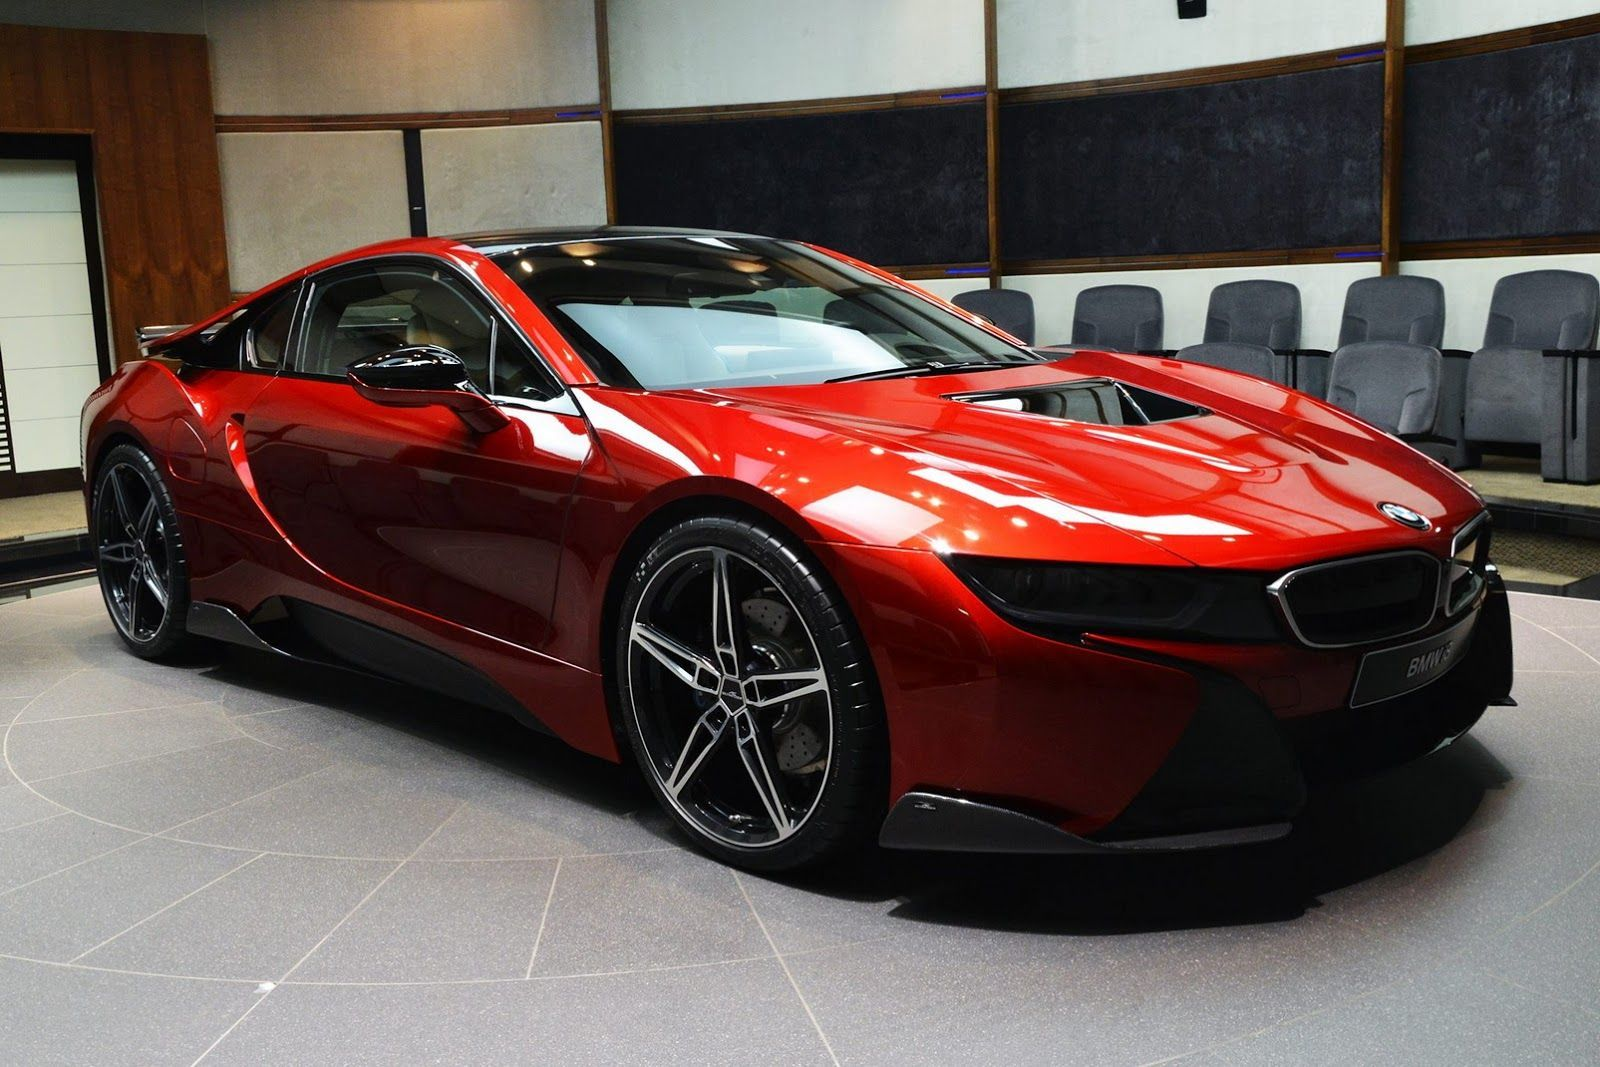 Amazing 8 Best Hybrid Cars For 2018 Buyers Cars Bmw I8 Bmw Cars